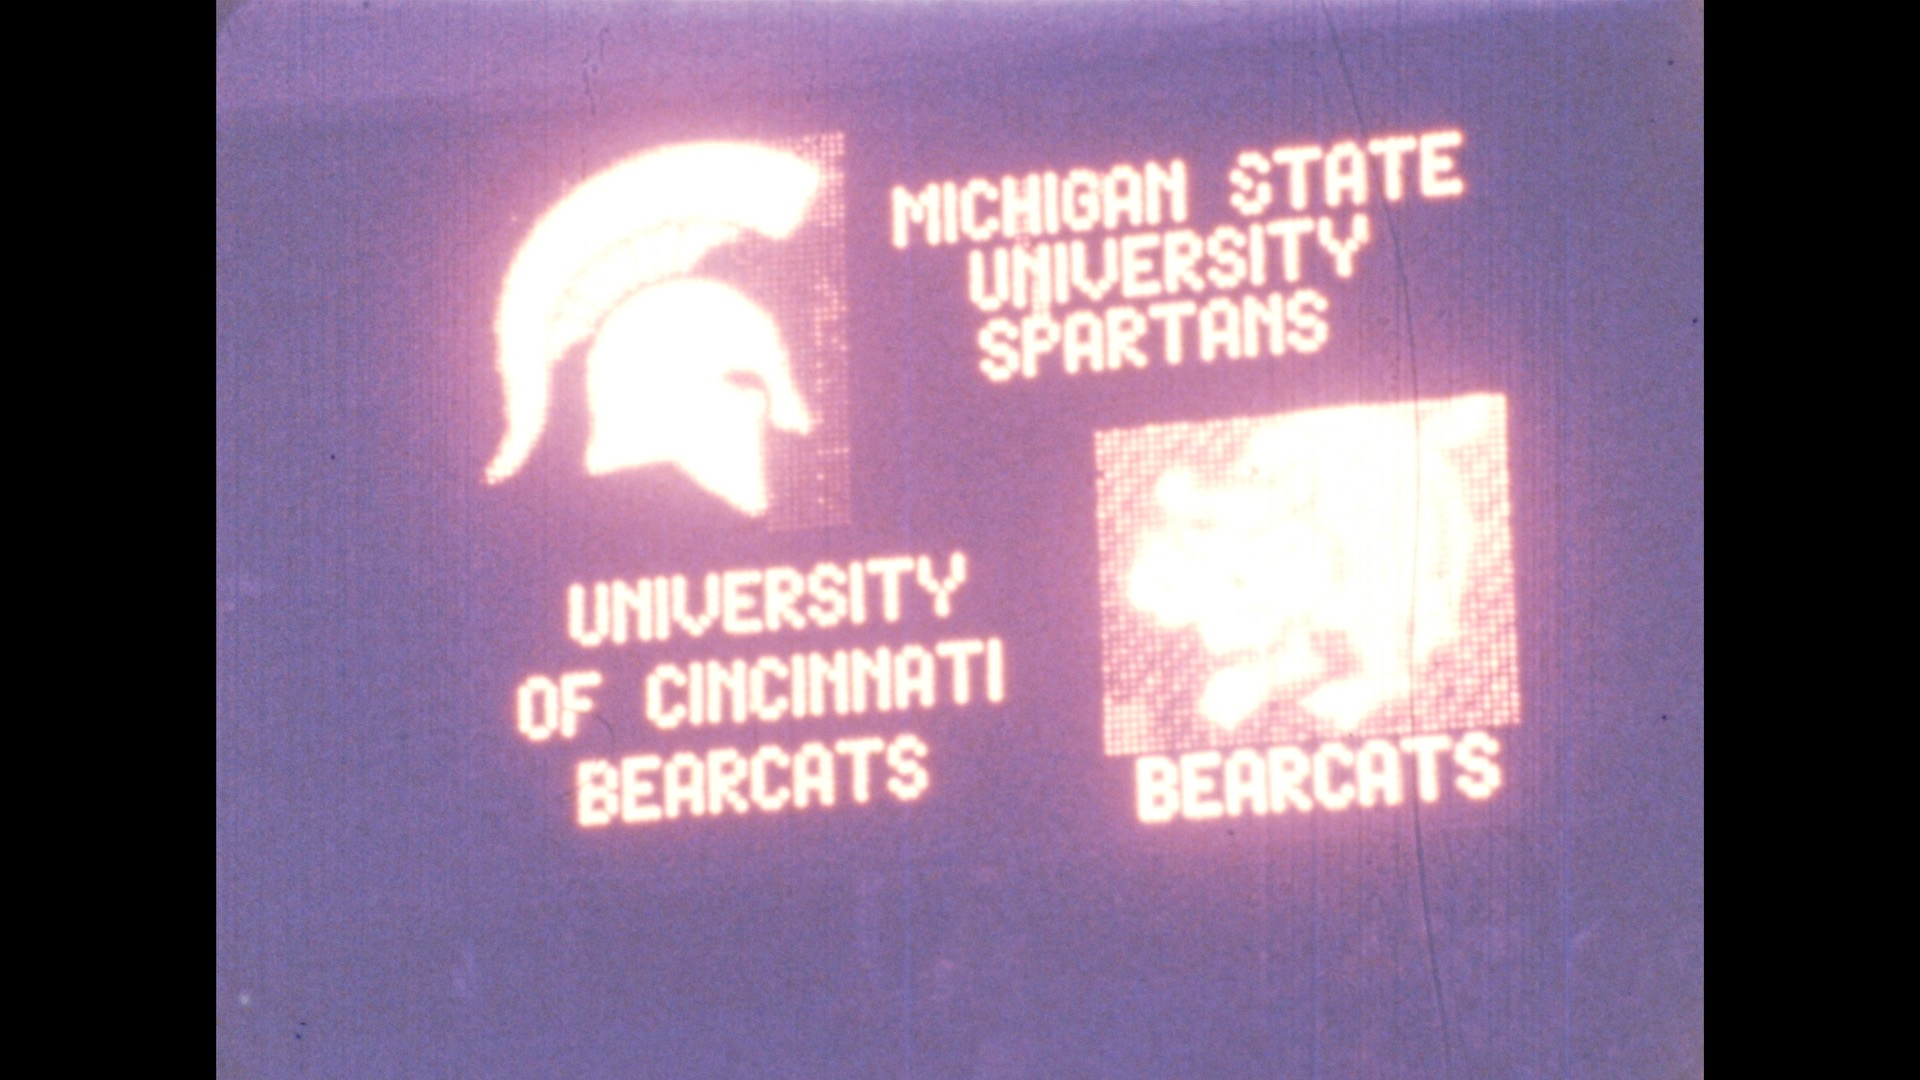 MSU Basketball vs. Cincinnati, 1978